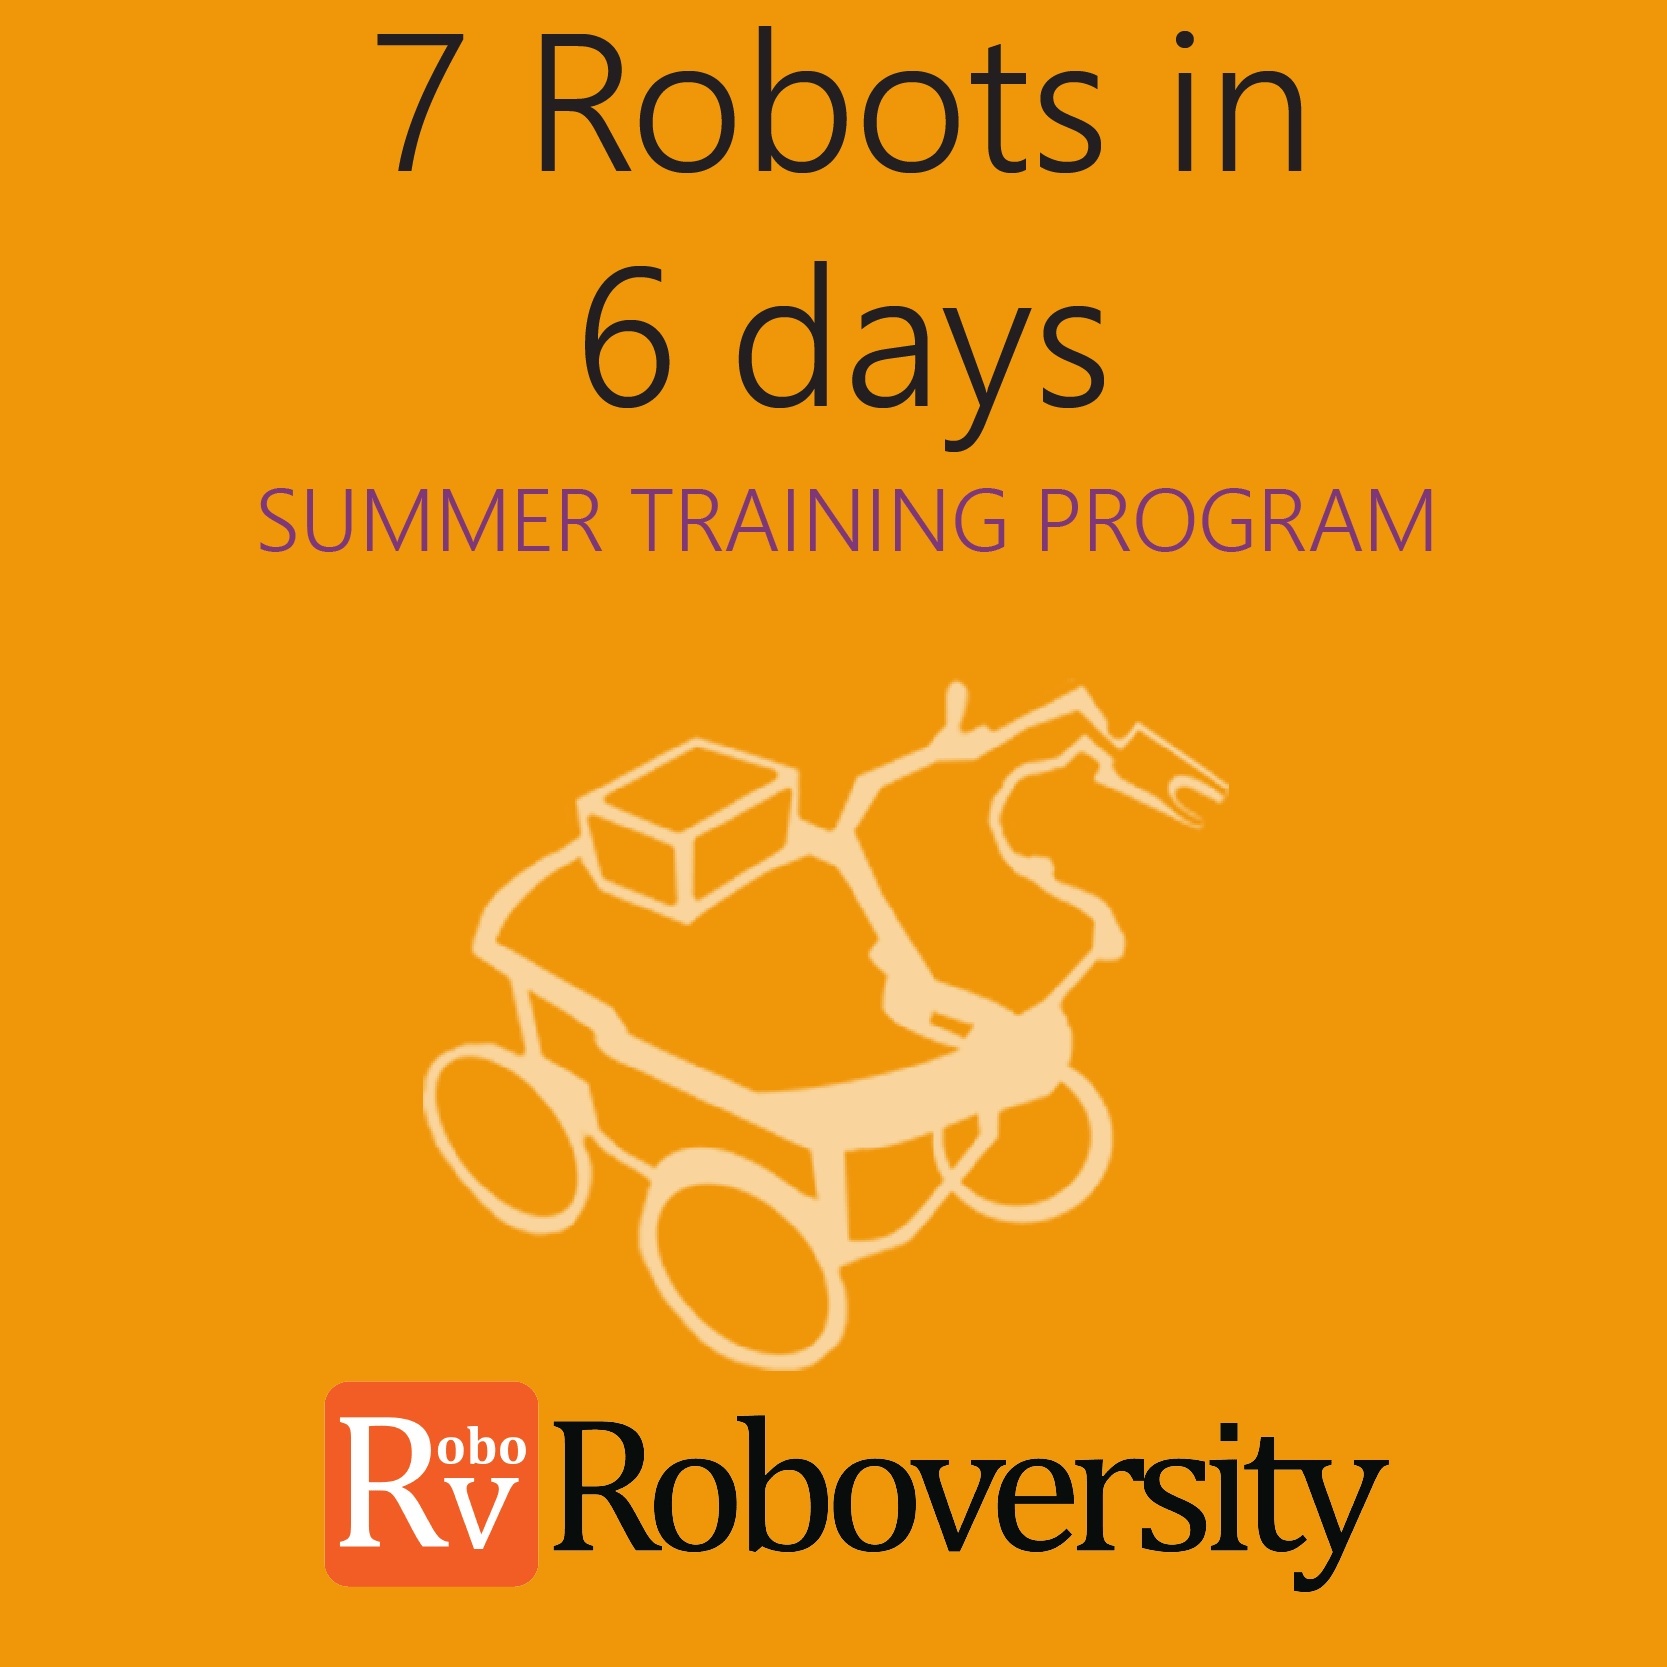 Summer Training Program on 7 Robots in 6 Days  at Skyfi Labs Center, Domlur, Bangalore Workshop